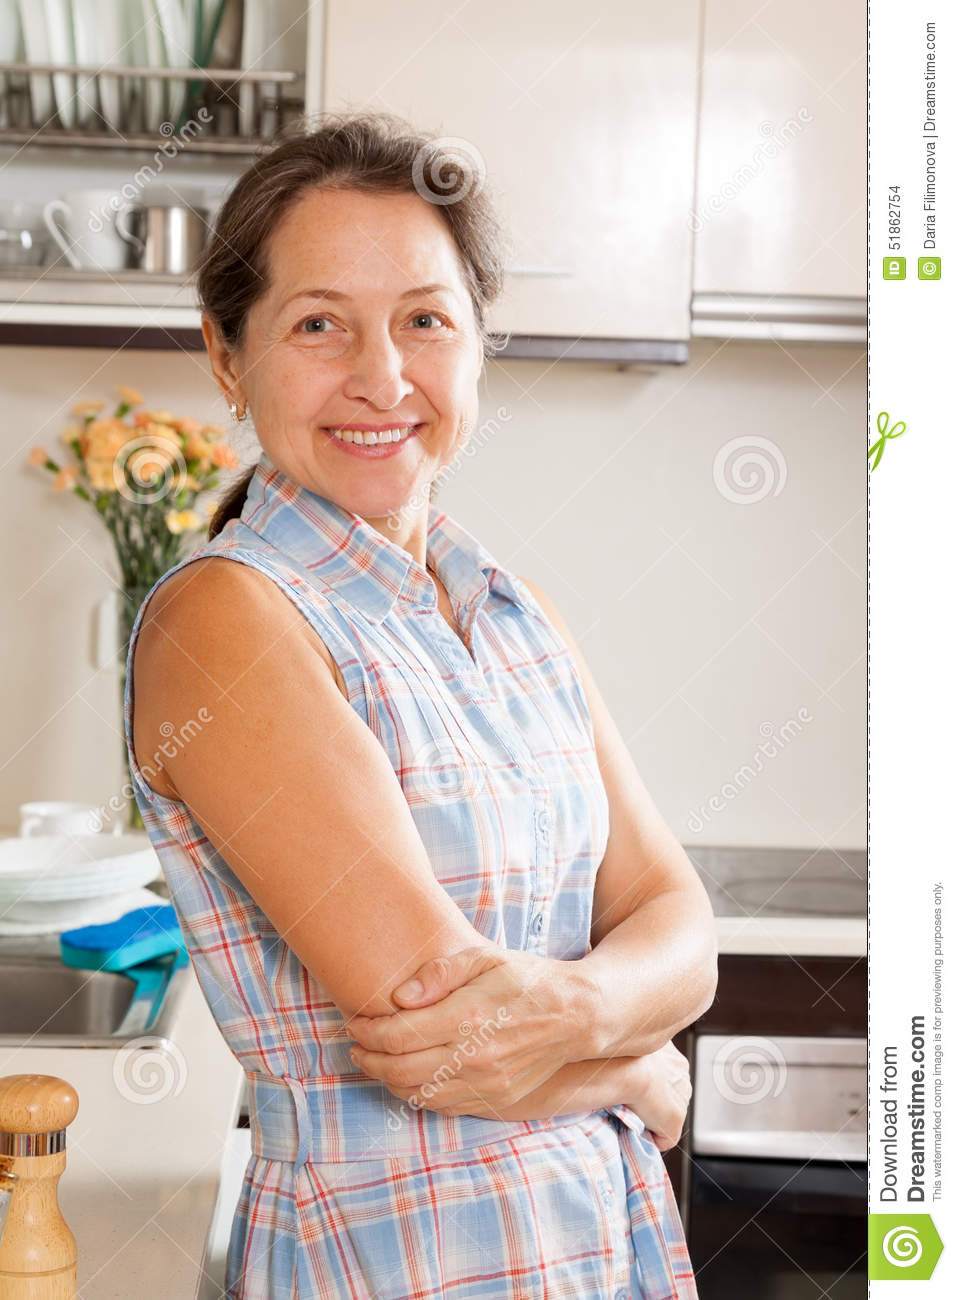 woman at her big kitchen stock photo. image of person - 51862754